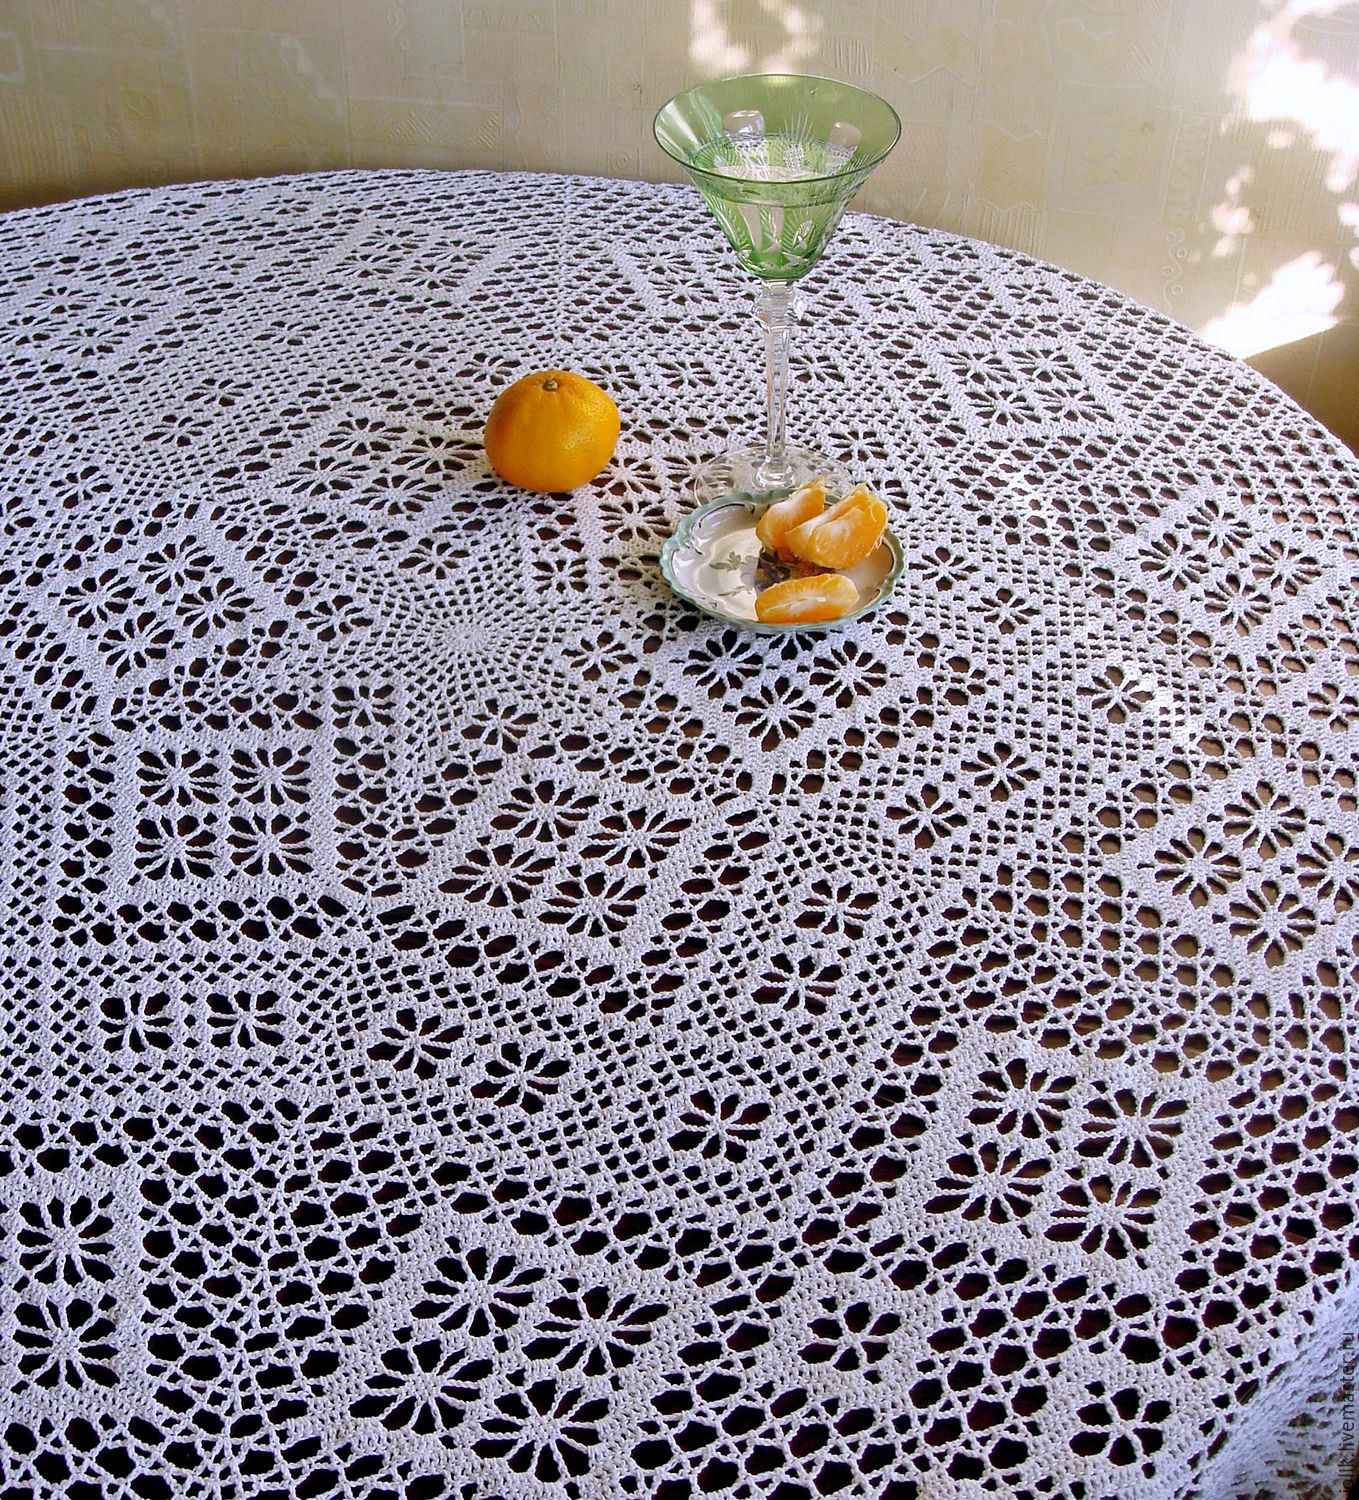 Crocheted Round Tablecloth Star Shop Online On Livemaster With